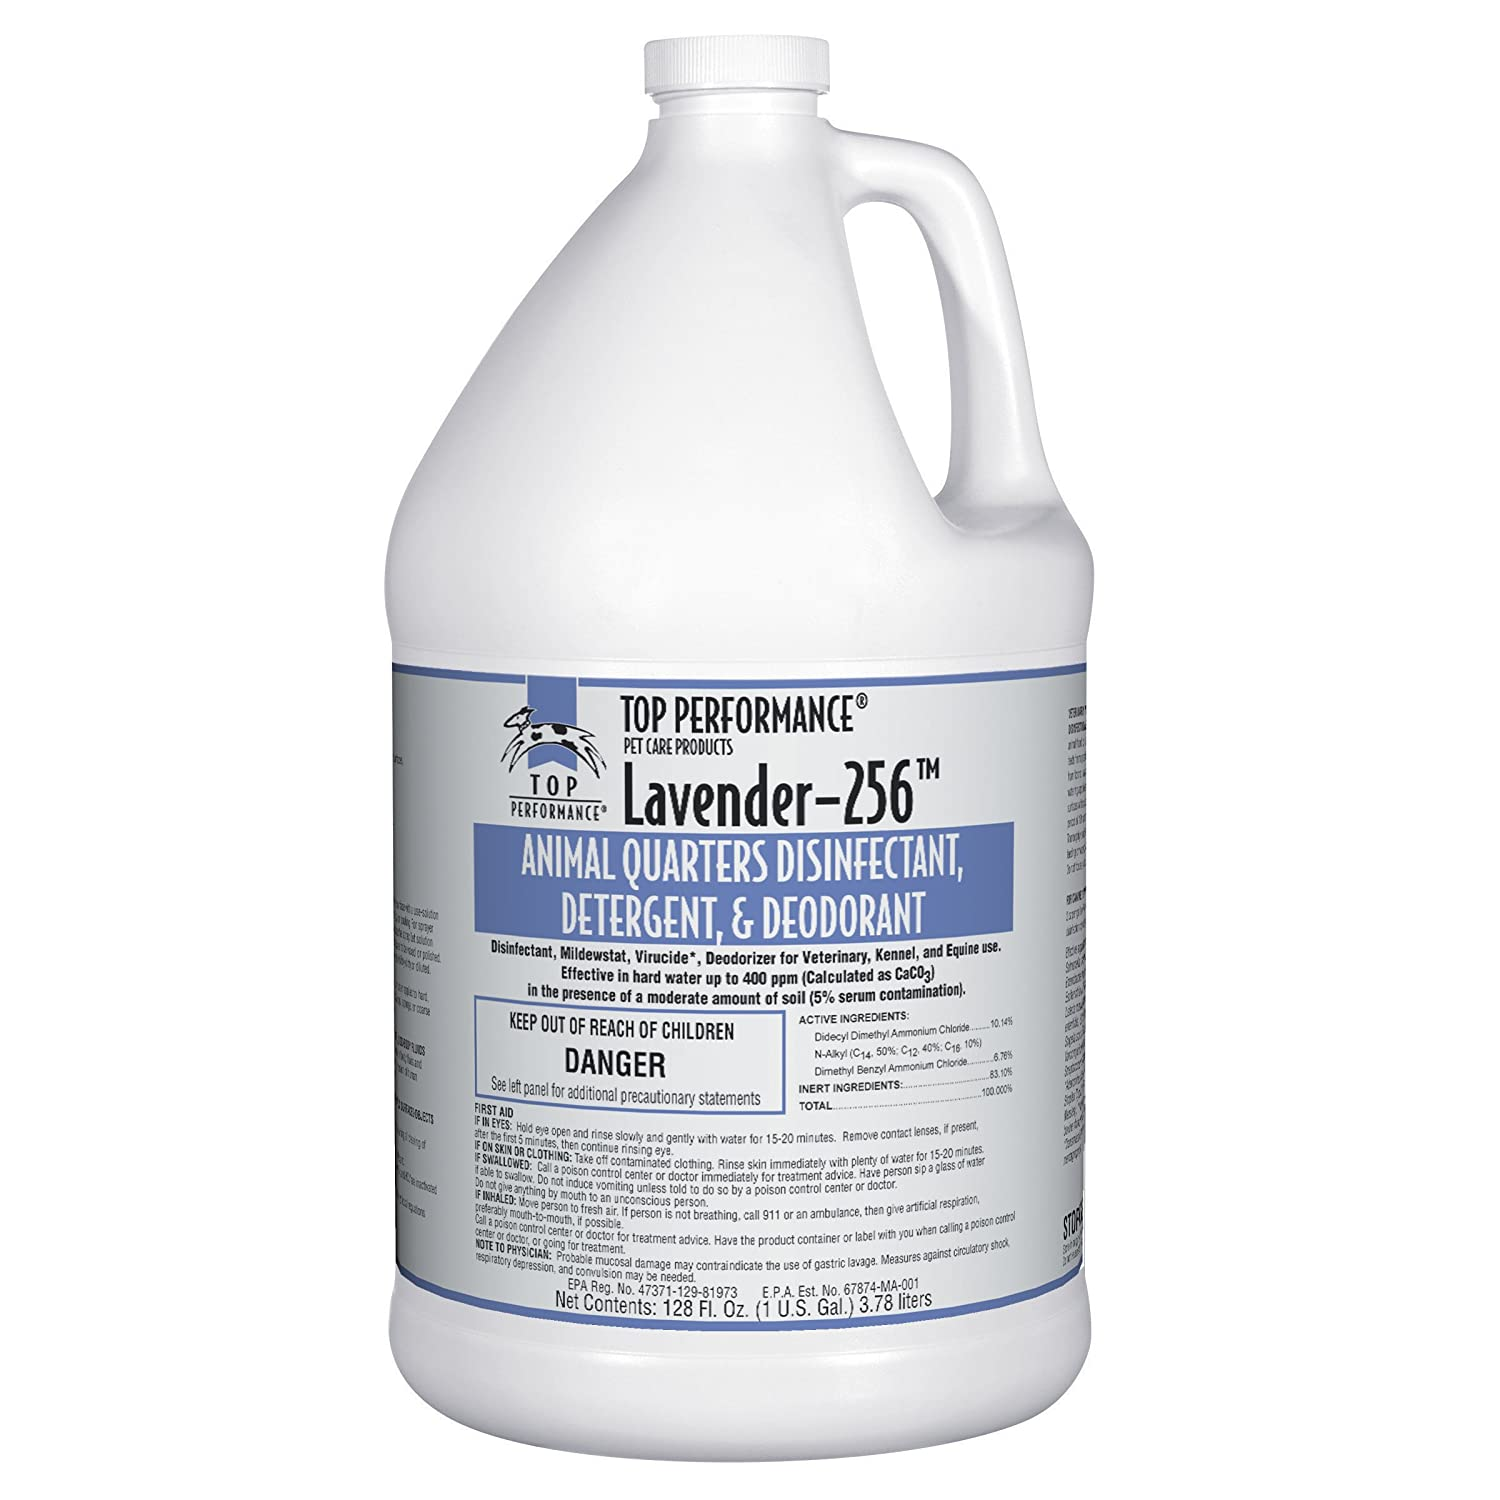 Top Performance 256 Disinfectant